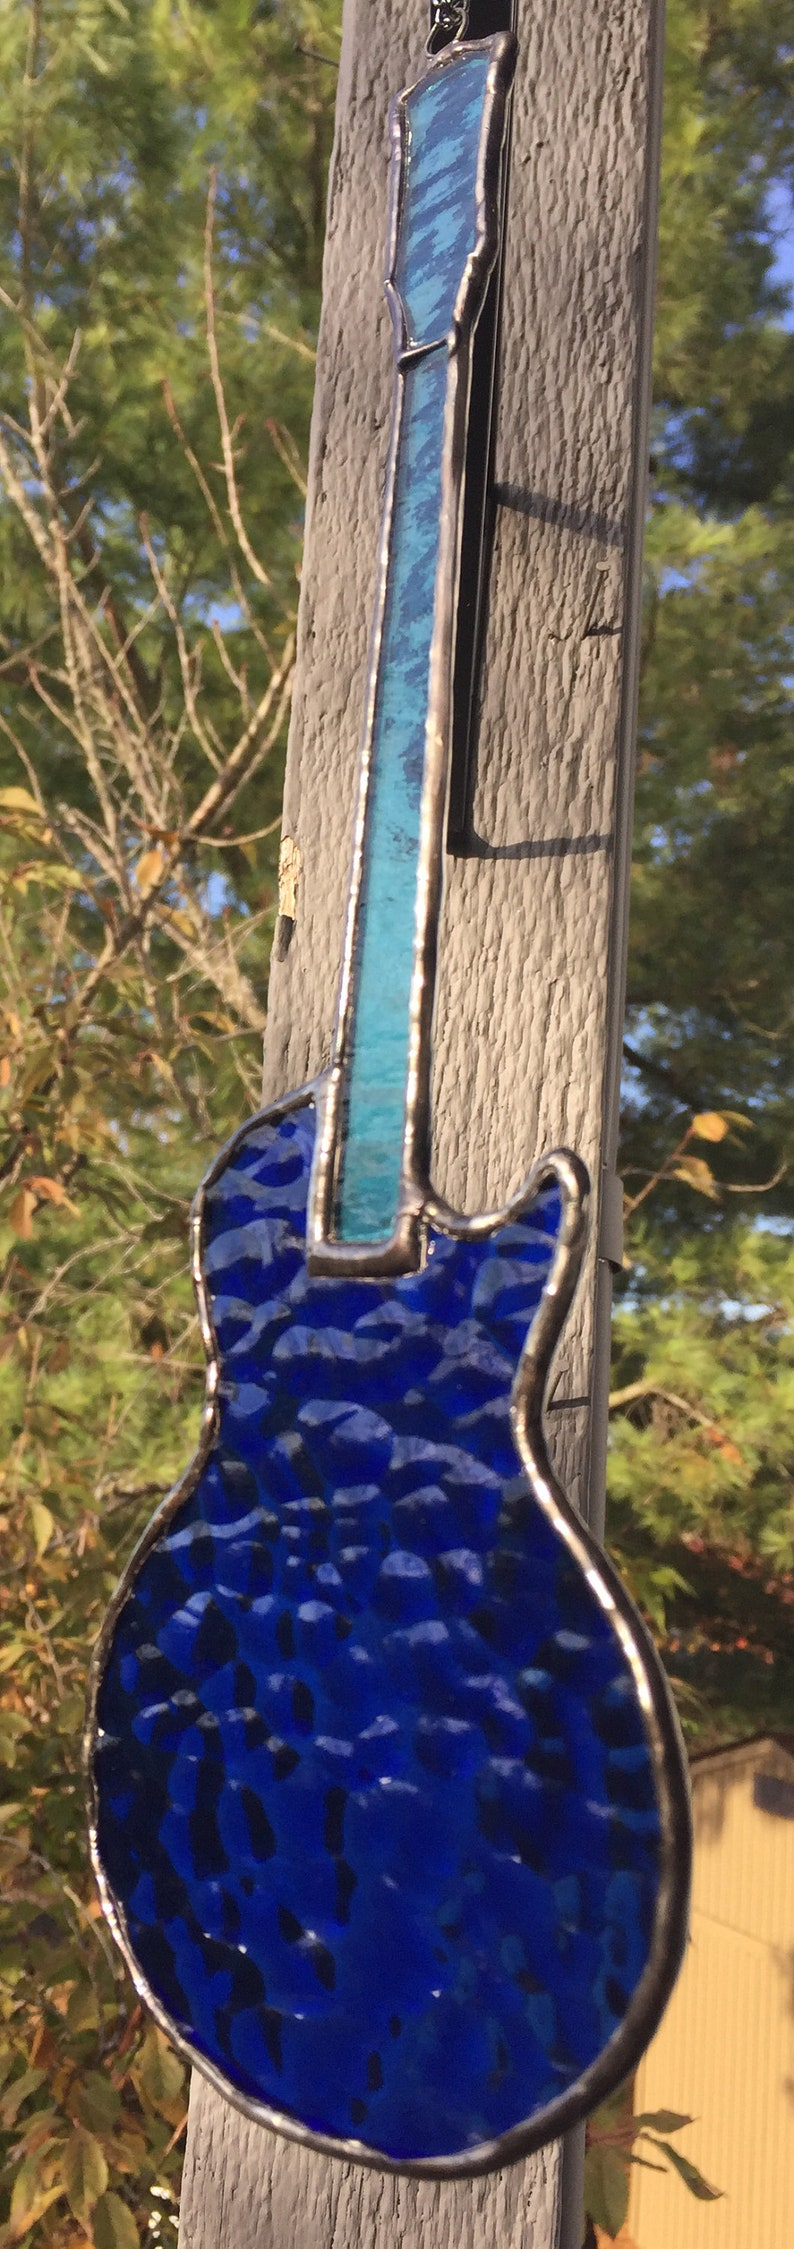 Stained Glass Electric Guitar Gibson Les Paul styled Right Handed or Left Handed Suncatcher Blue Reinforced with Copper Wire